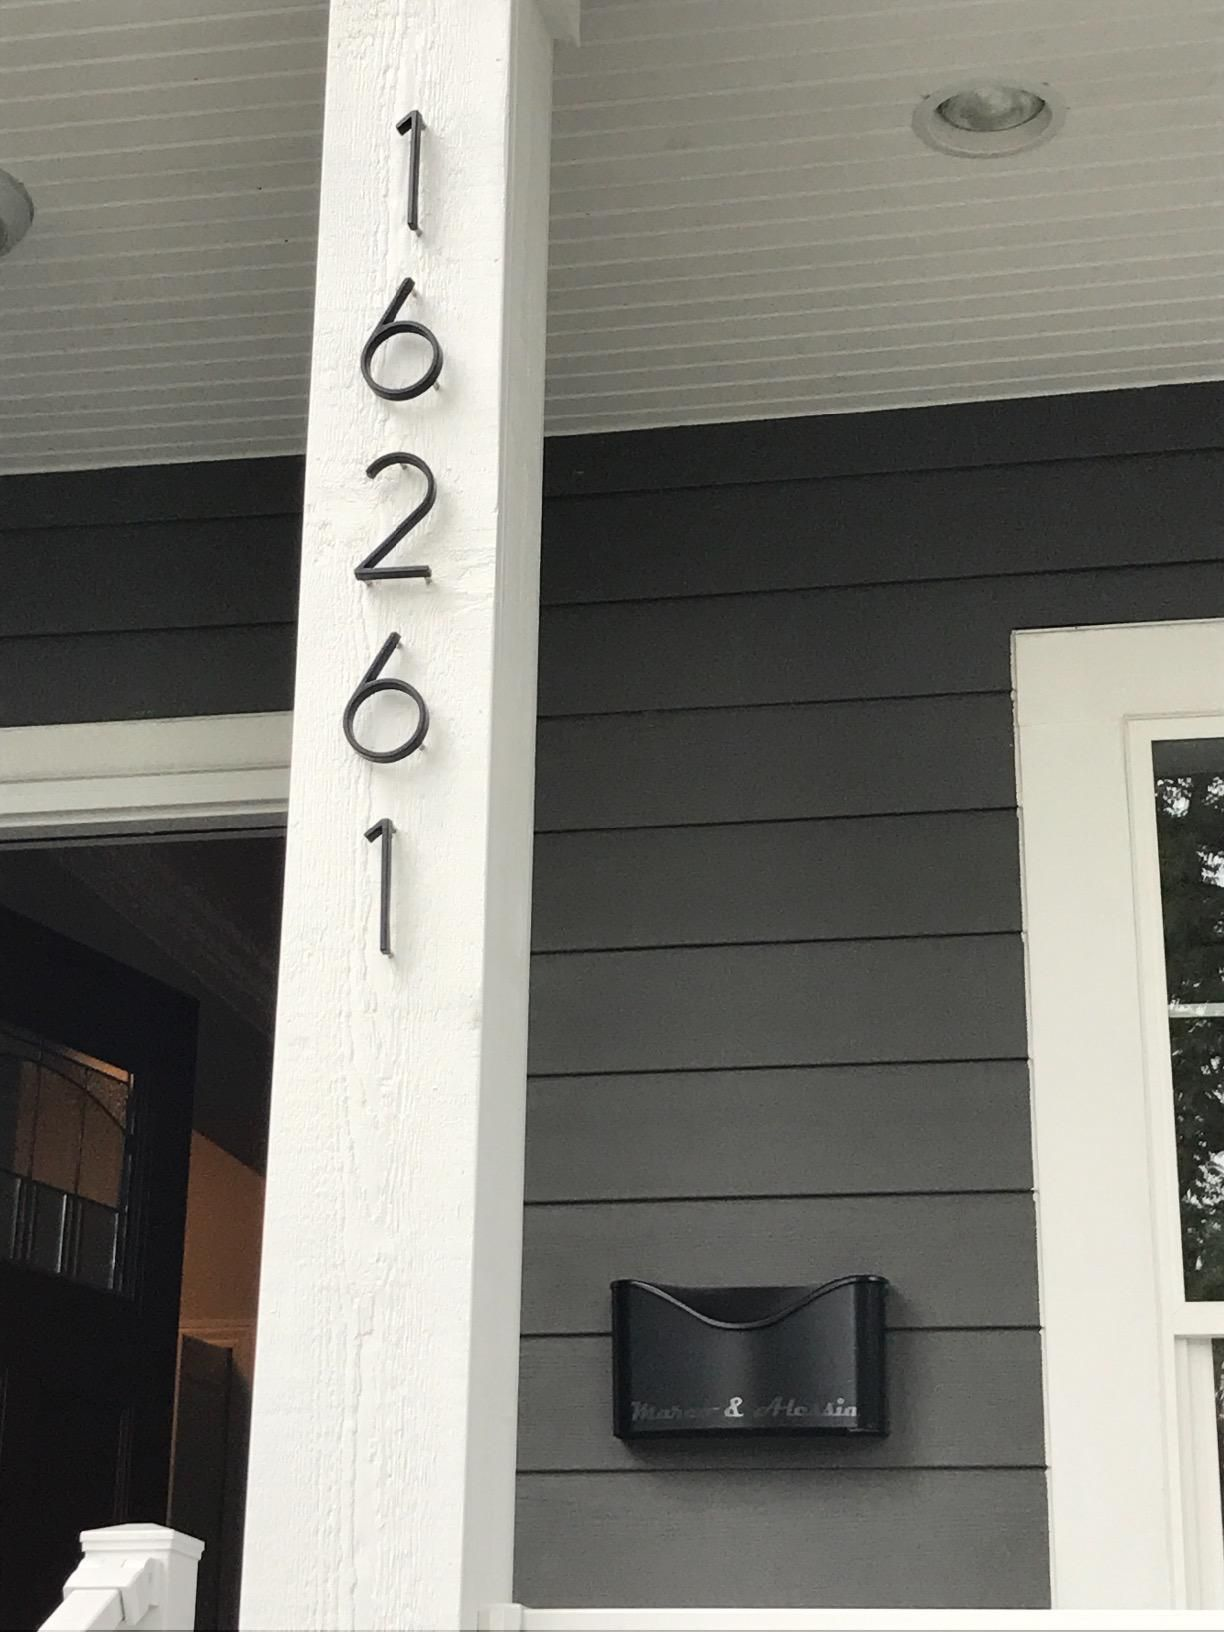 House Numbers Vertically On The Porch Post Mailbox Mounted Next To The Door Vinyl Siding Vinyl House Porch Mailbox